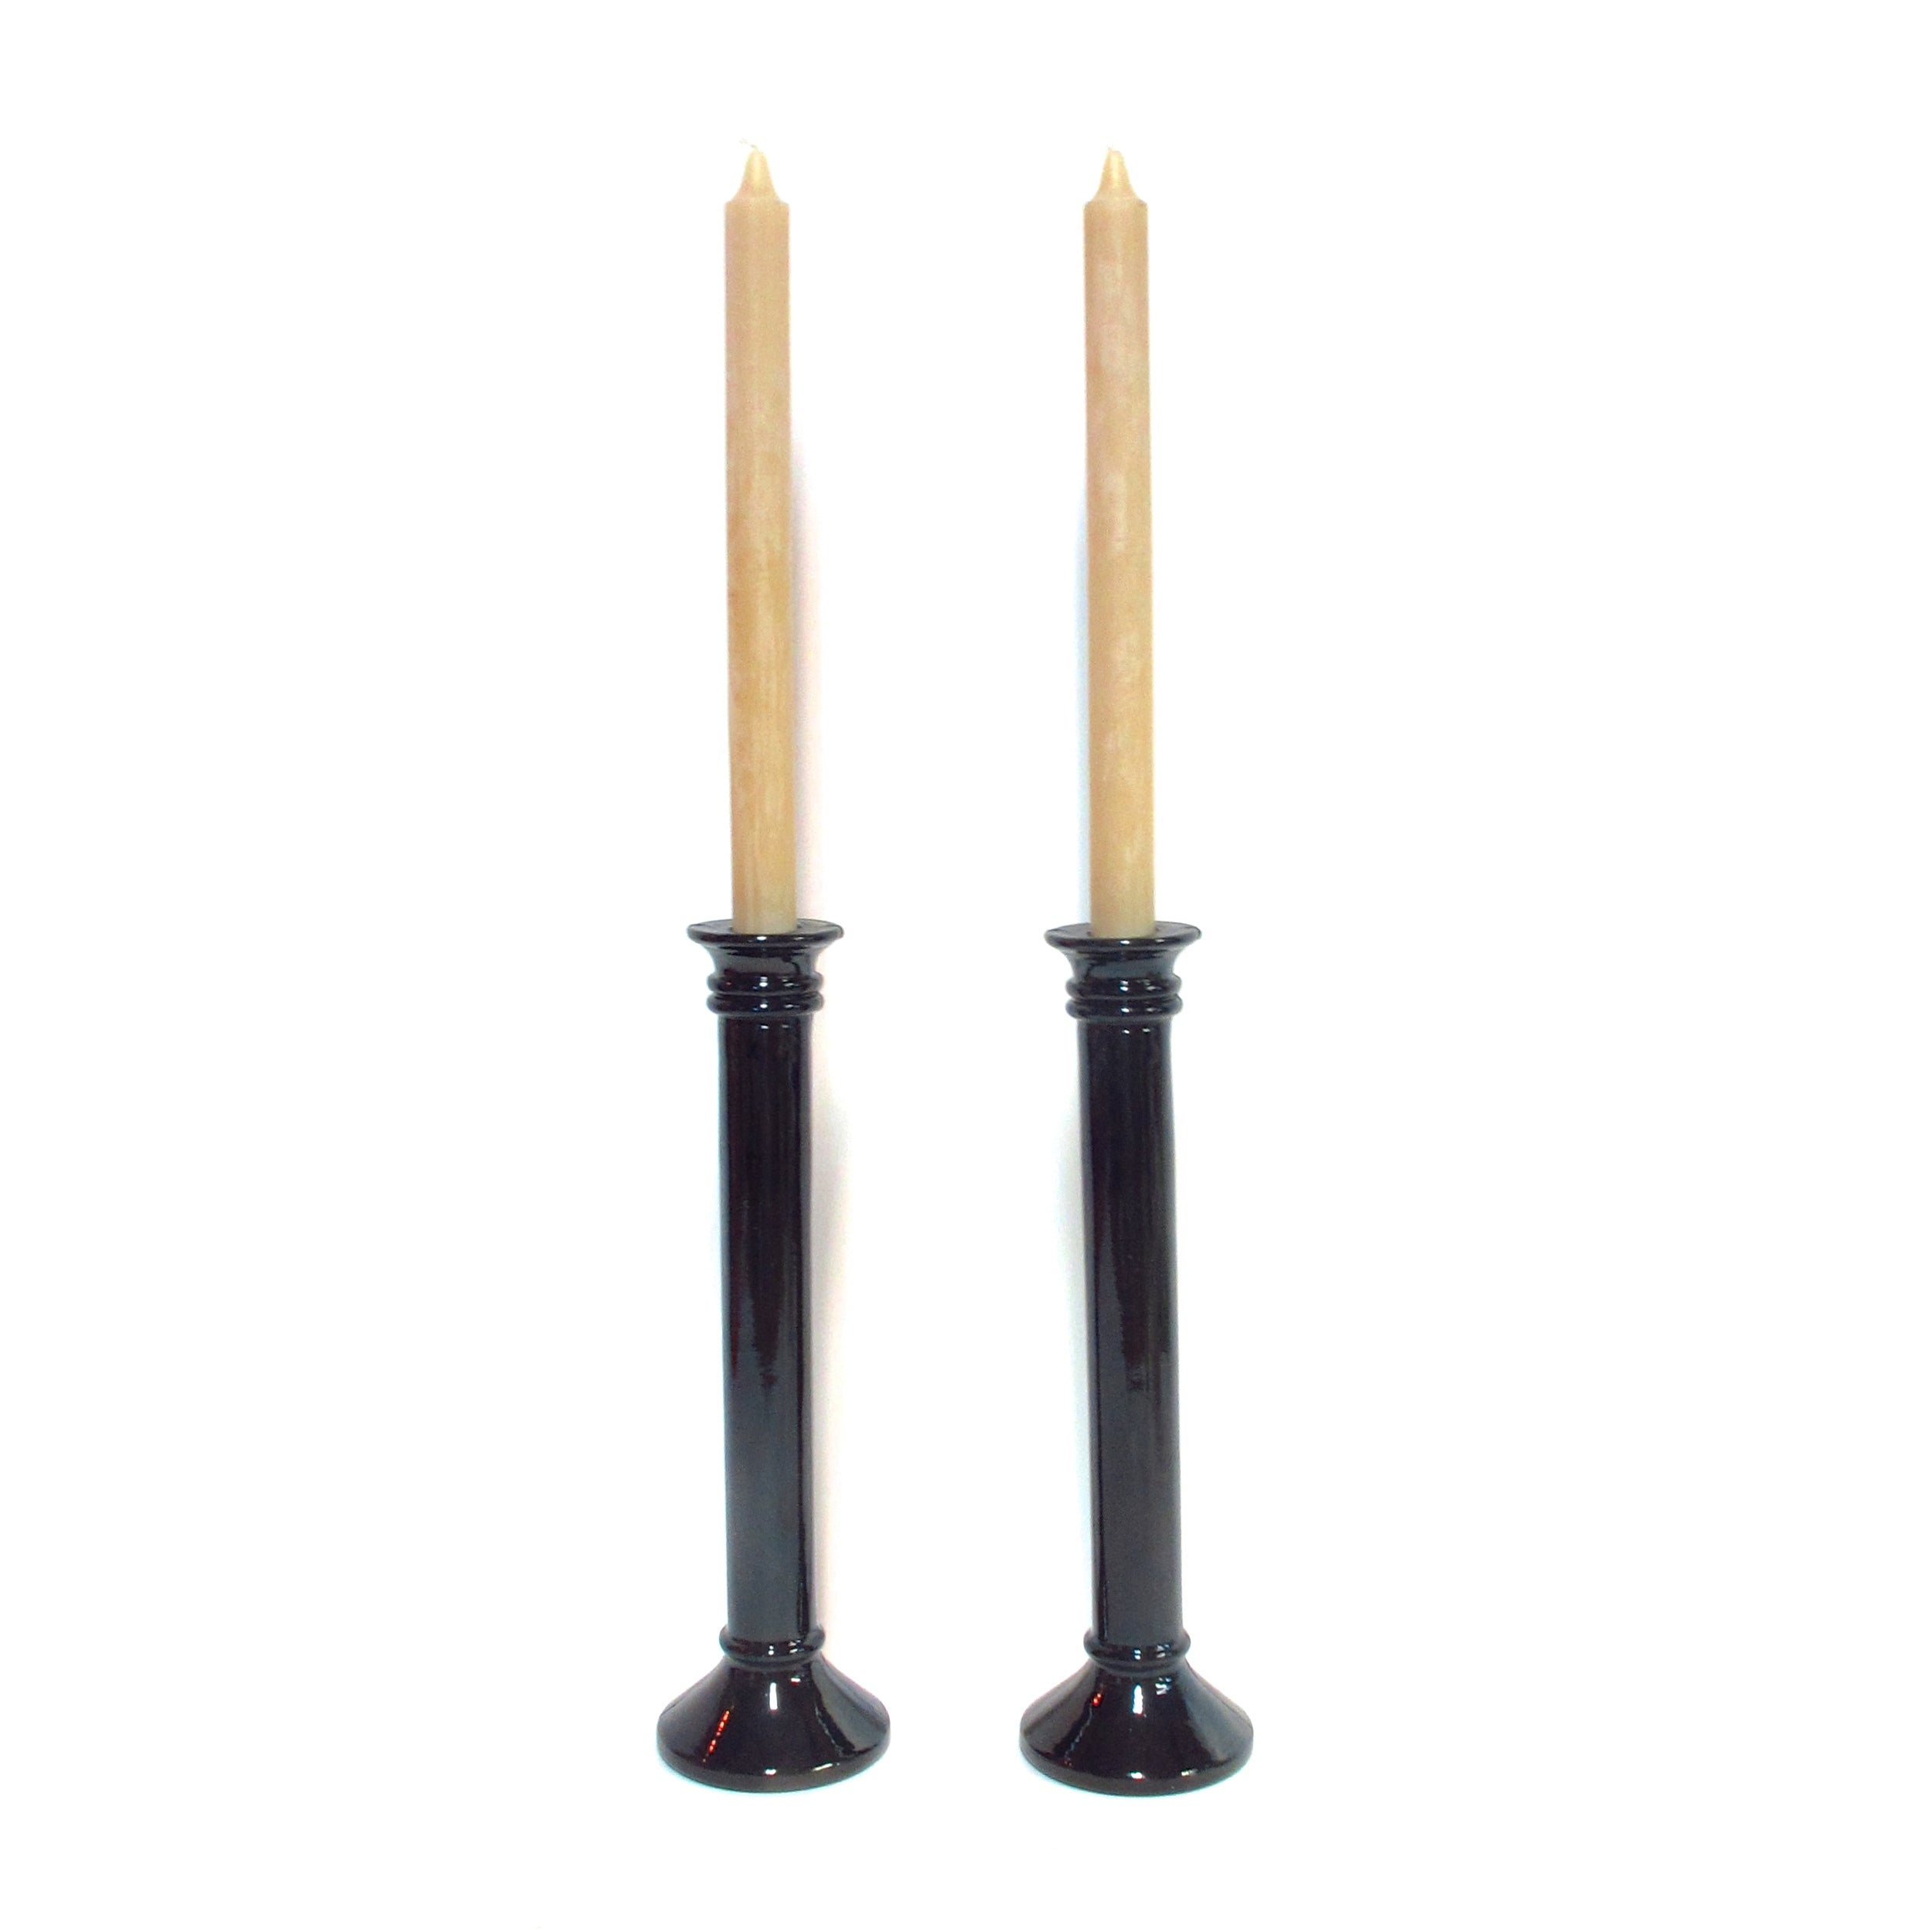 Spanish made black recycled glass candle sticks for Queen B beeswax tapers